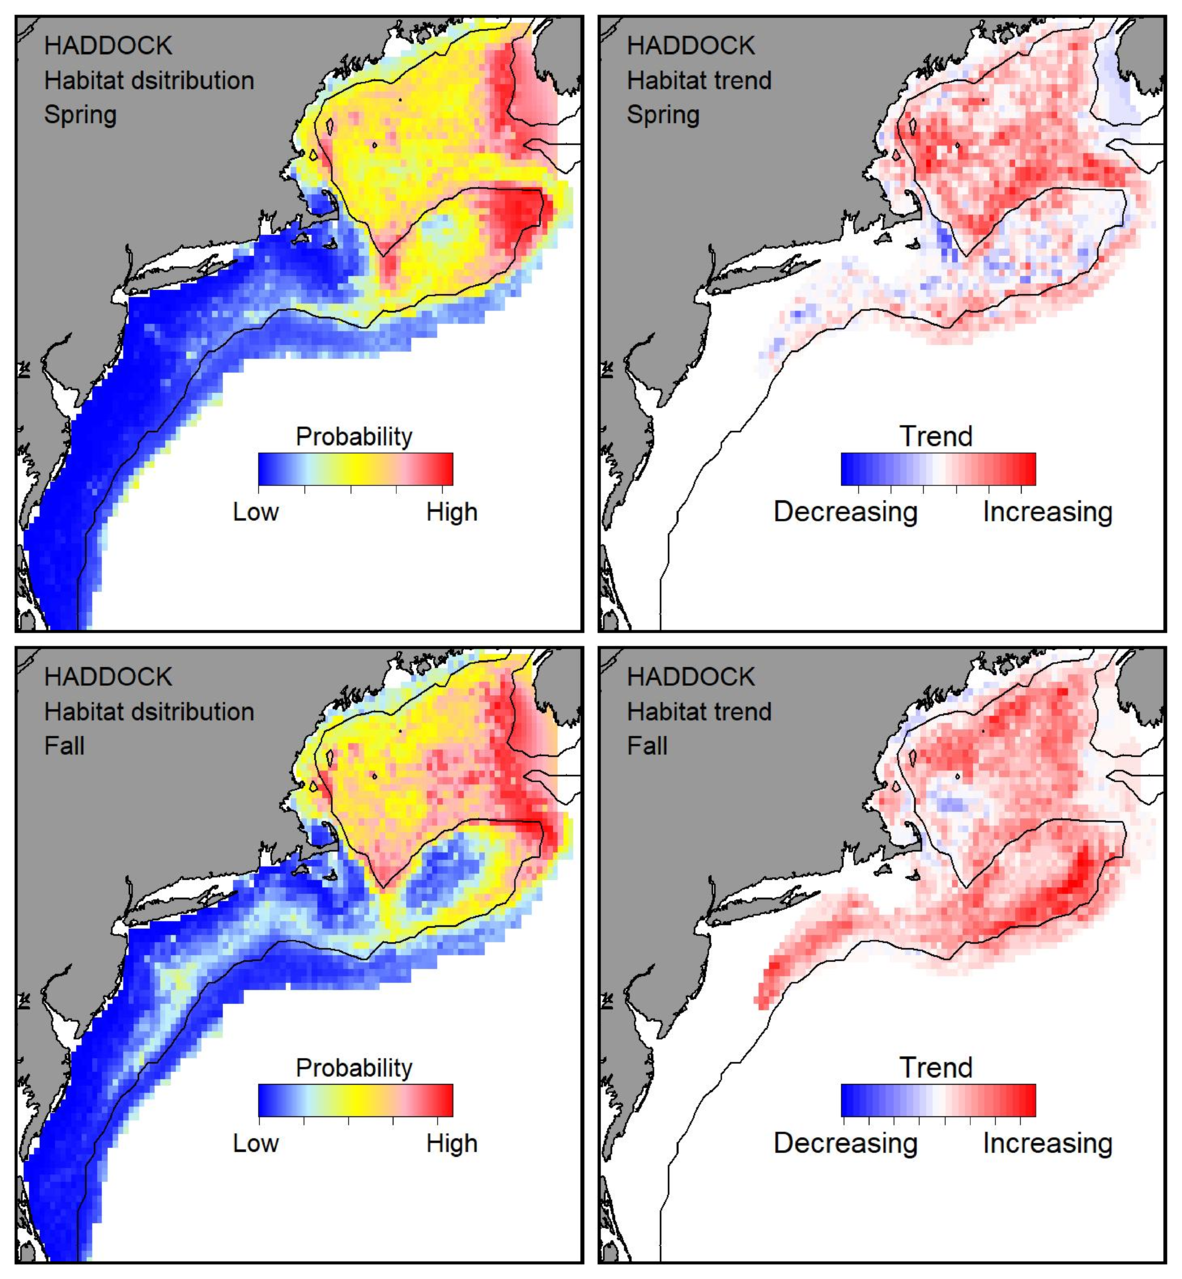 Top row: Probable habitat distribution for haddock showing the highest concentration and increasing trend in the Gulf of Maine during the spring. Bottom row: Probable habitat distribution for haddock showing the highest concentration and increasing trend in the Gulf of Maine during the fall.